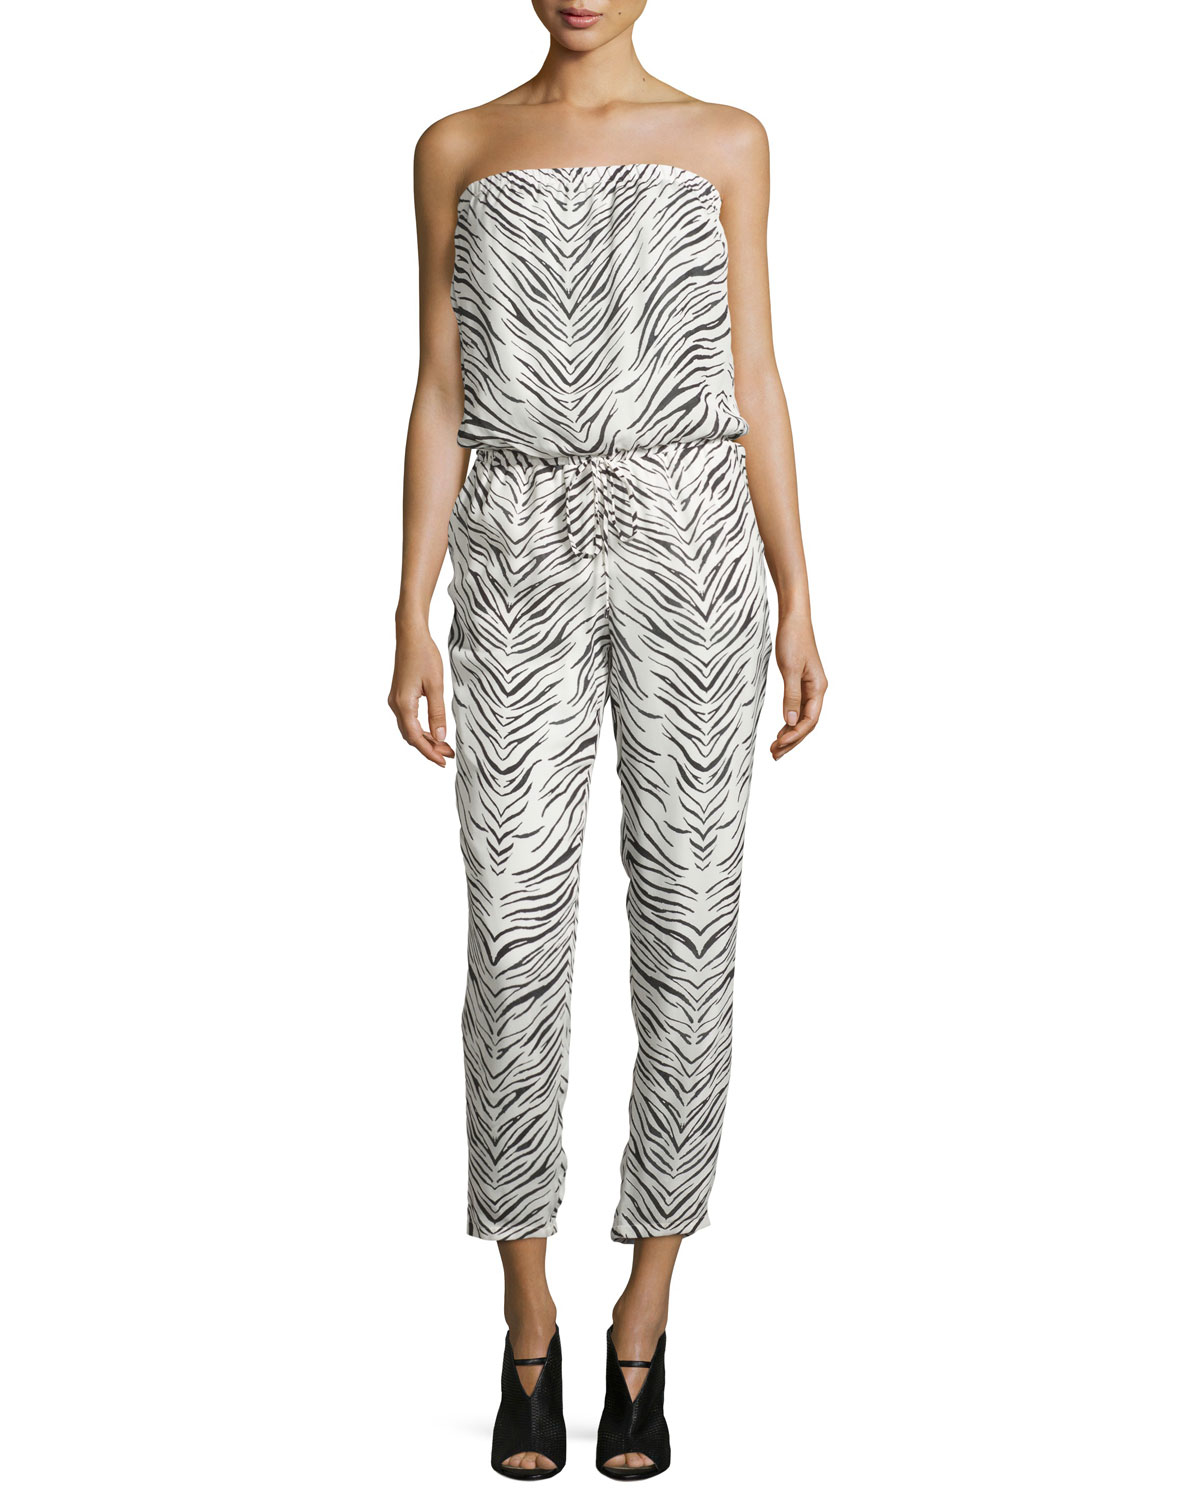 ceb5992cd83 Lyst - Haute Hippie Strapless Zebra-print Jumpsuit in Black